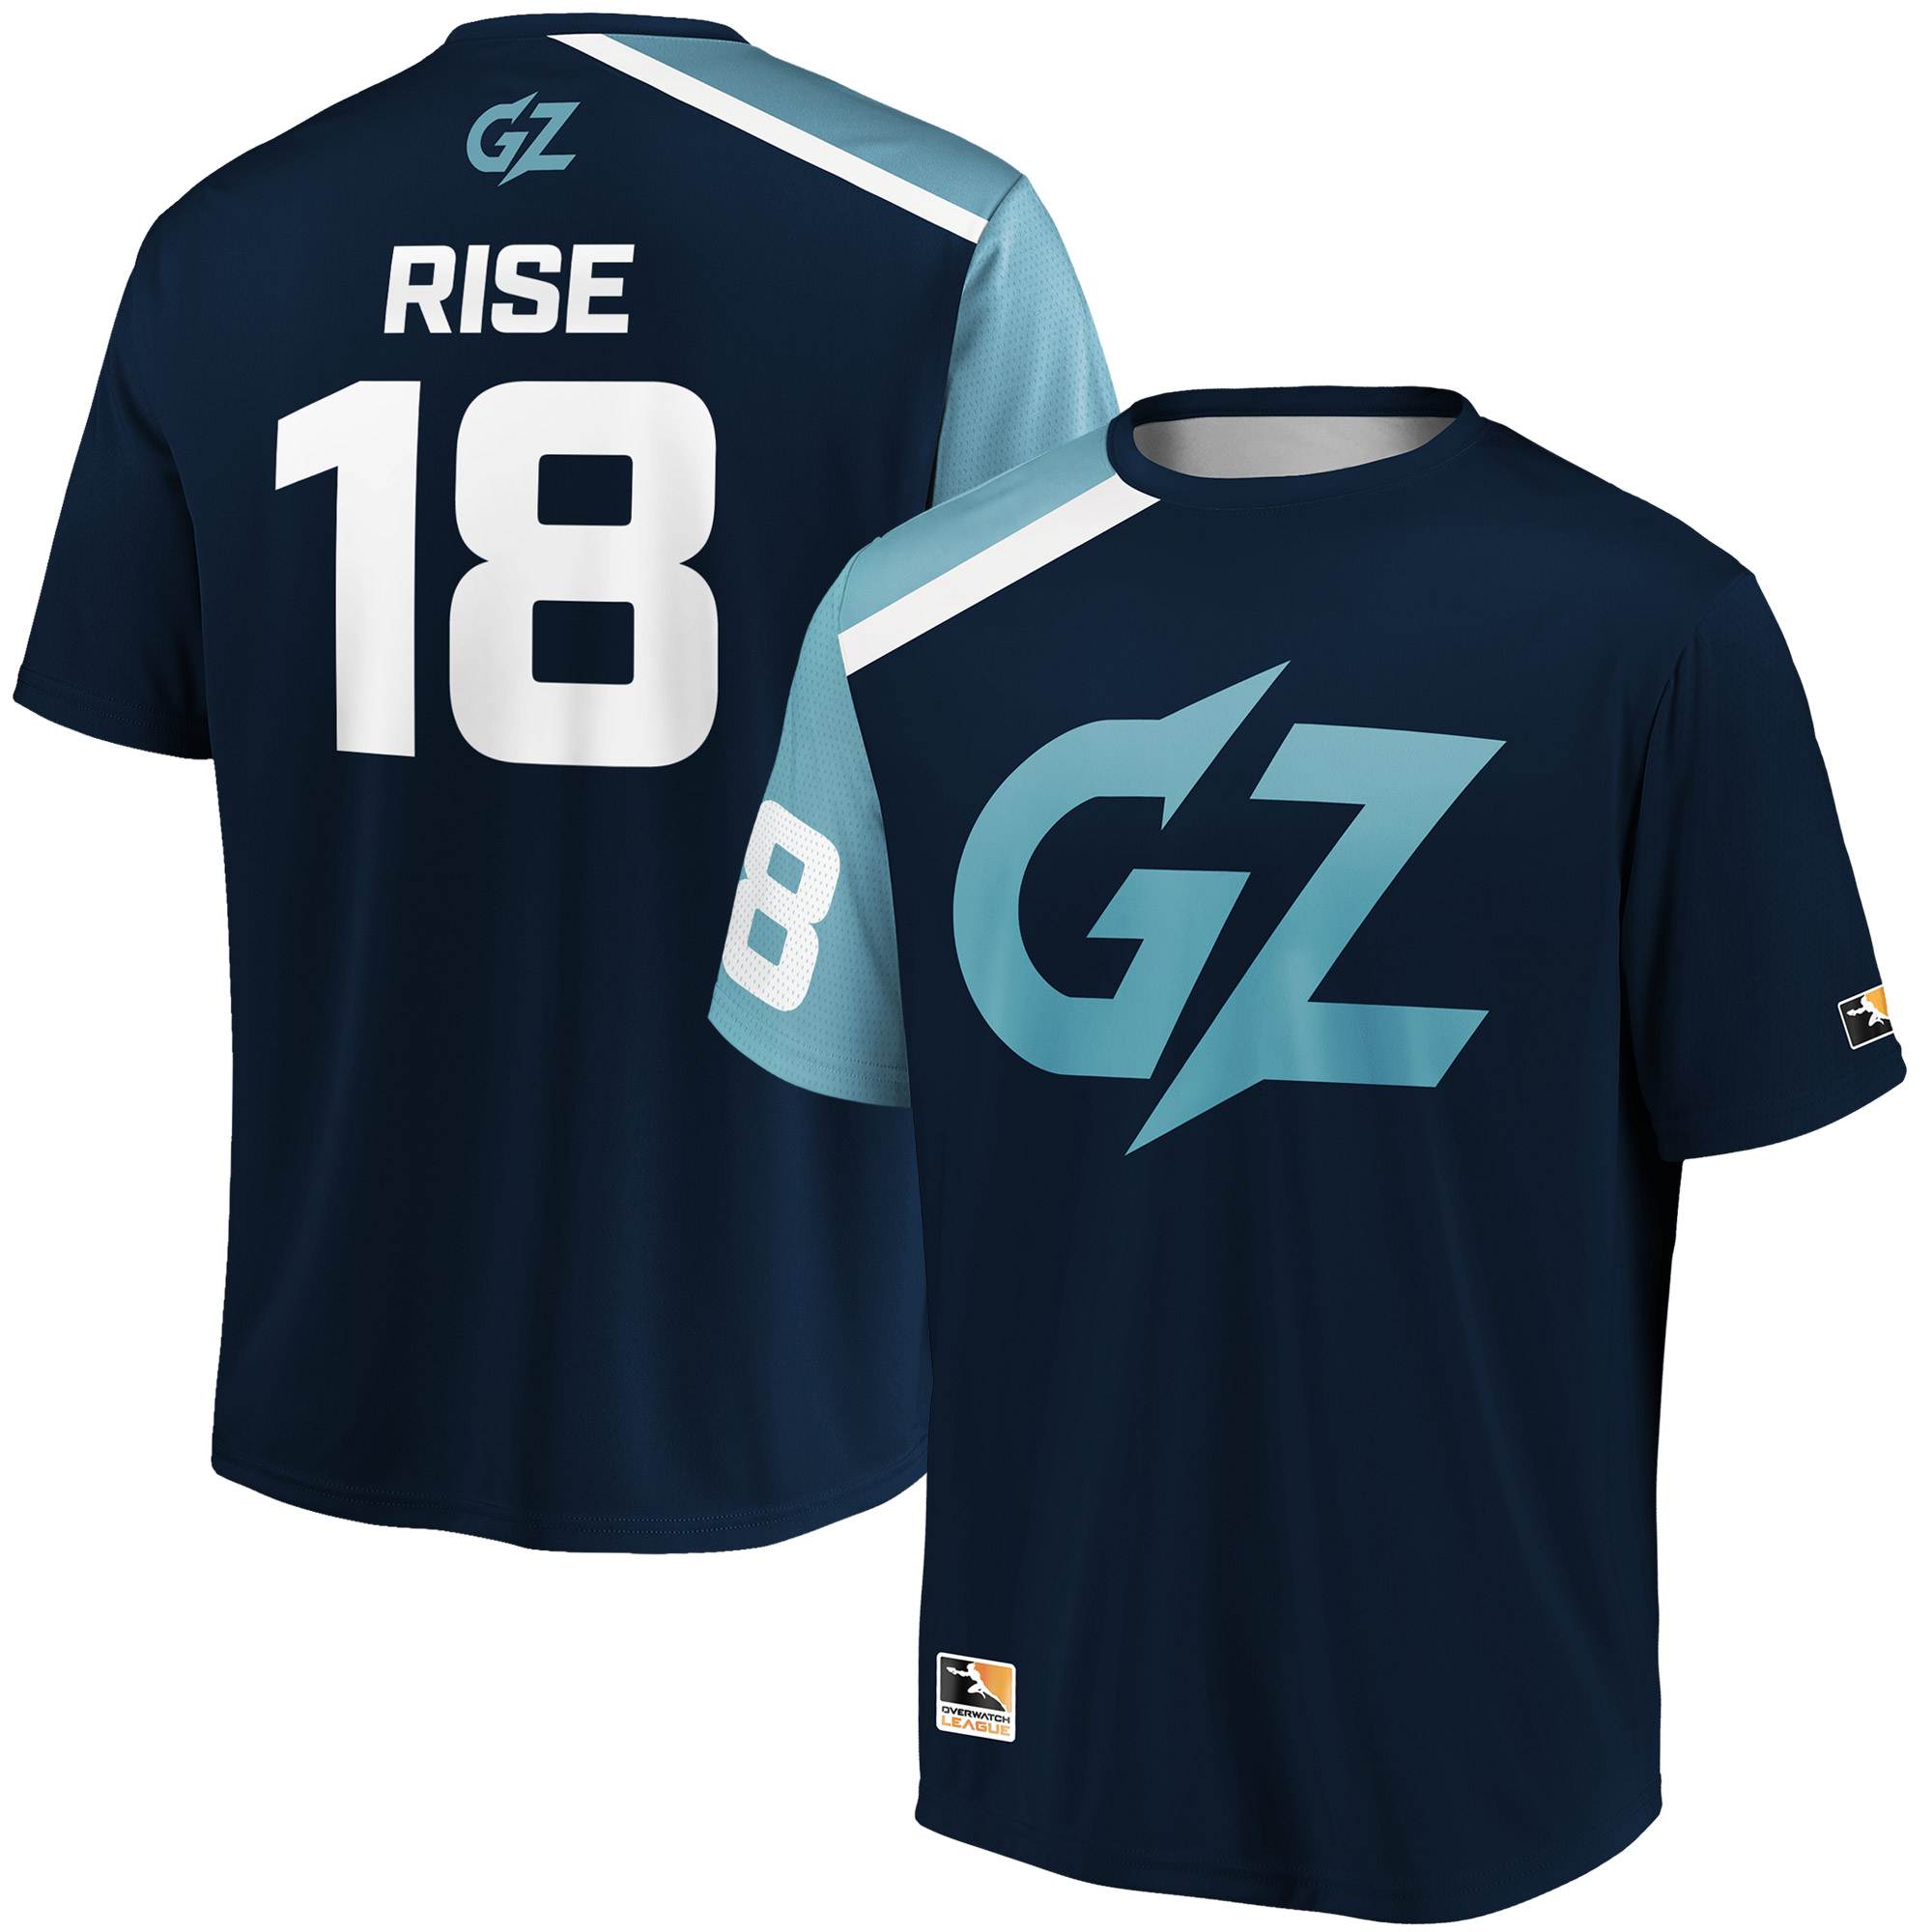 Rise Guangzhou Charge Overwatch League Replica Home Jersey - Navy